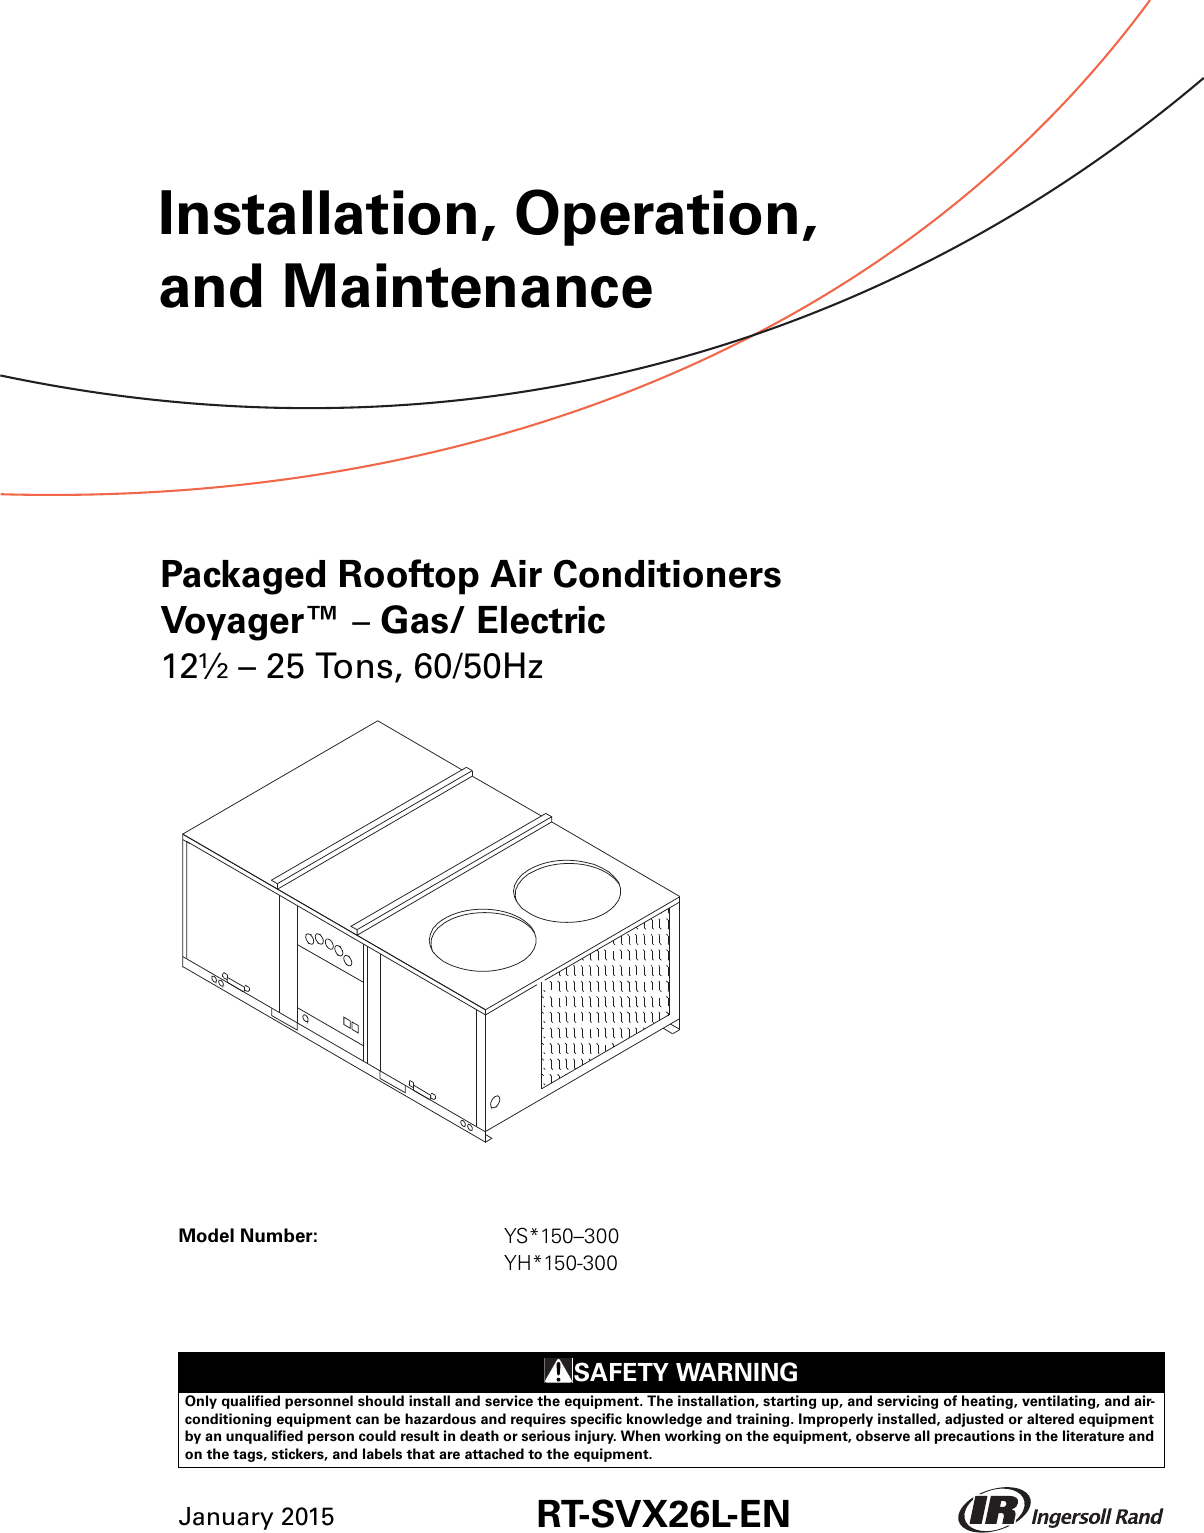 hight resolution of trane voyager 12 5 to 25 tons installation and maintenance manual packaged rooftop air conditioners voyager gas electric